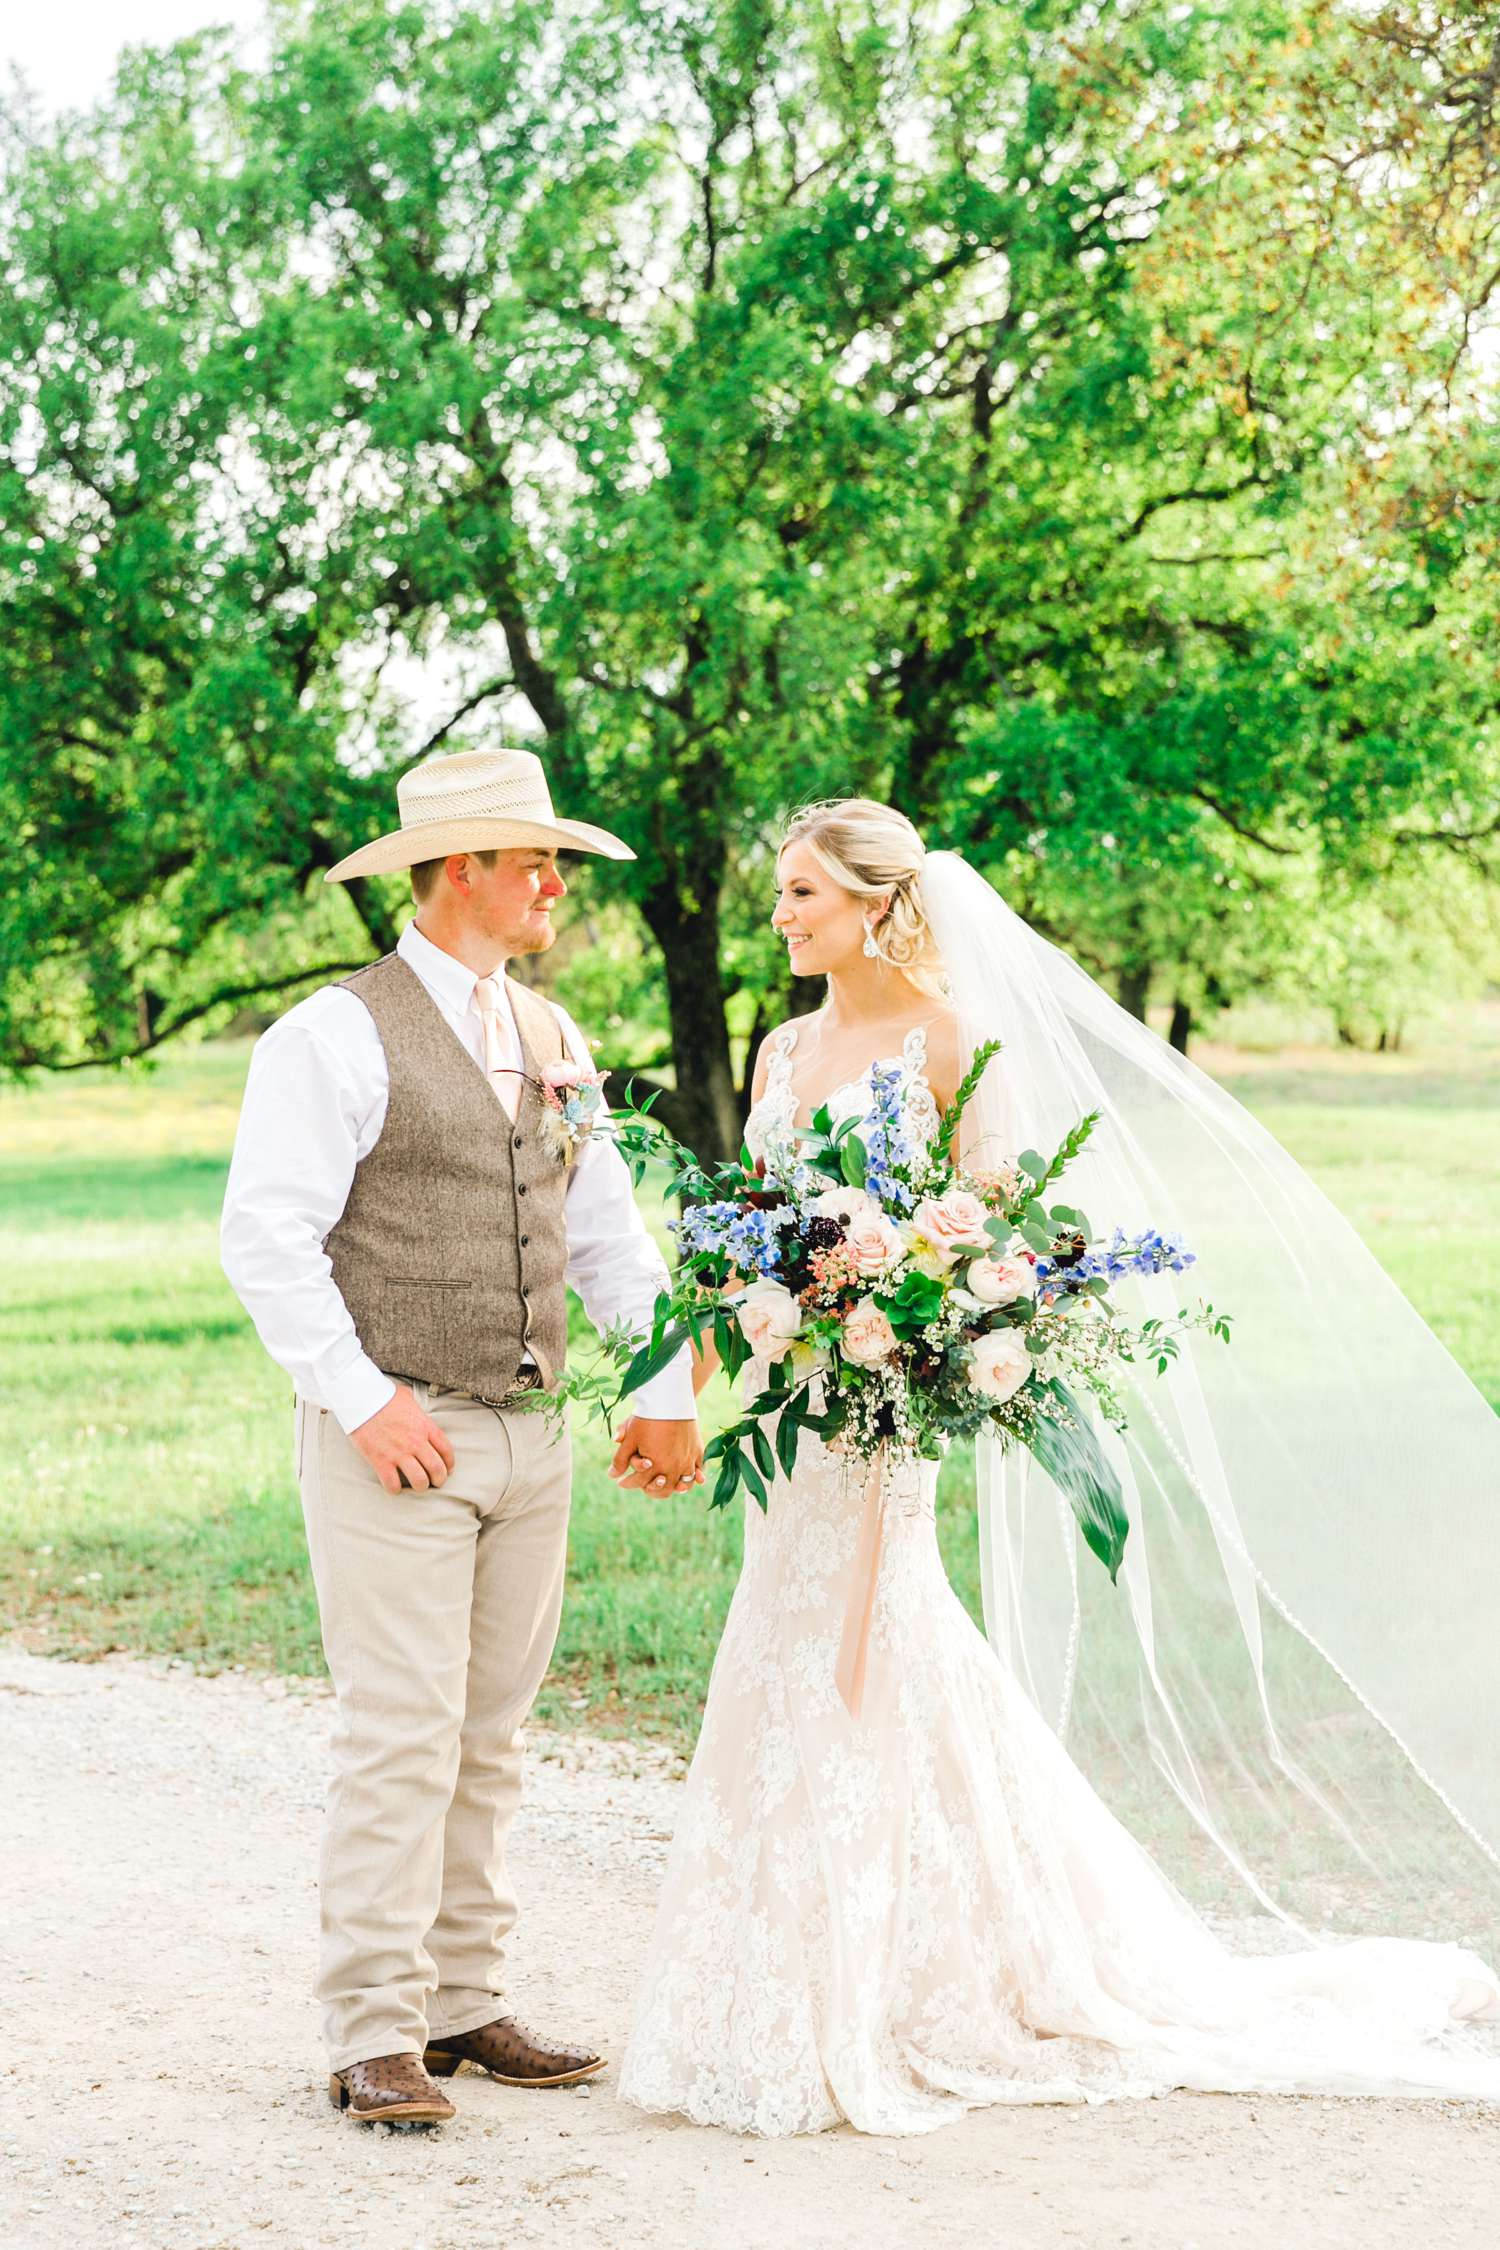 SARAH+TREVOR+BADGETT+SPARROW+CREEK+GRAHAM+TEXAS+ALLEEJ+WEDDINGS_0108.jpg